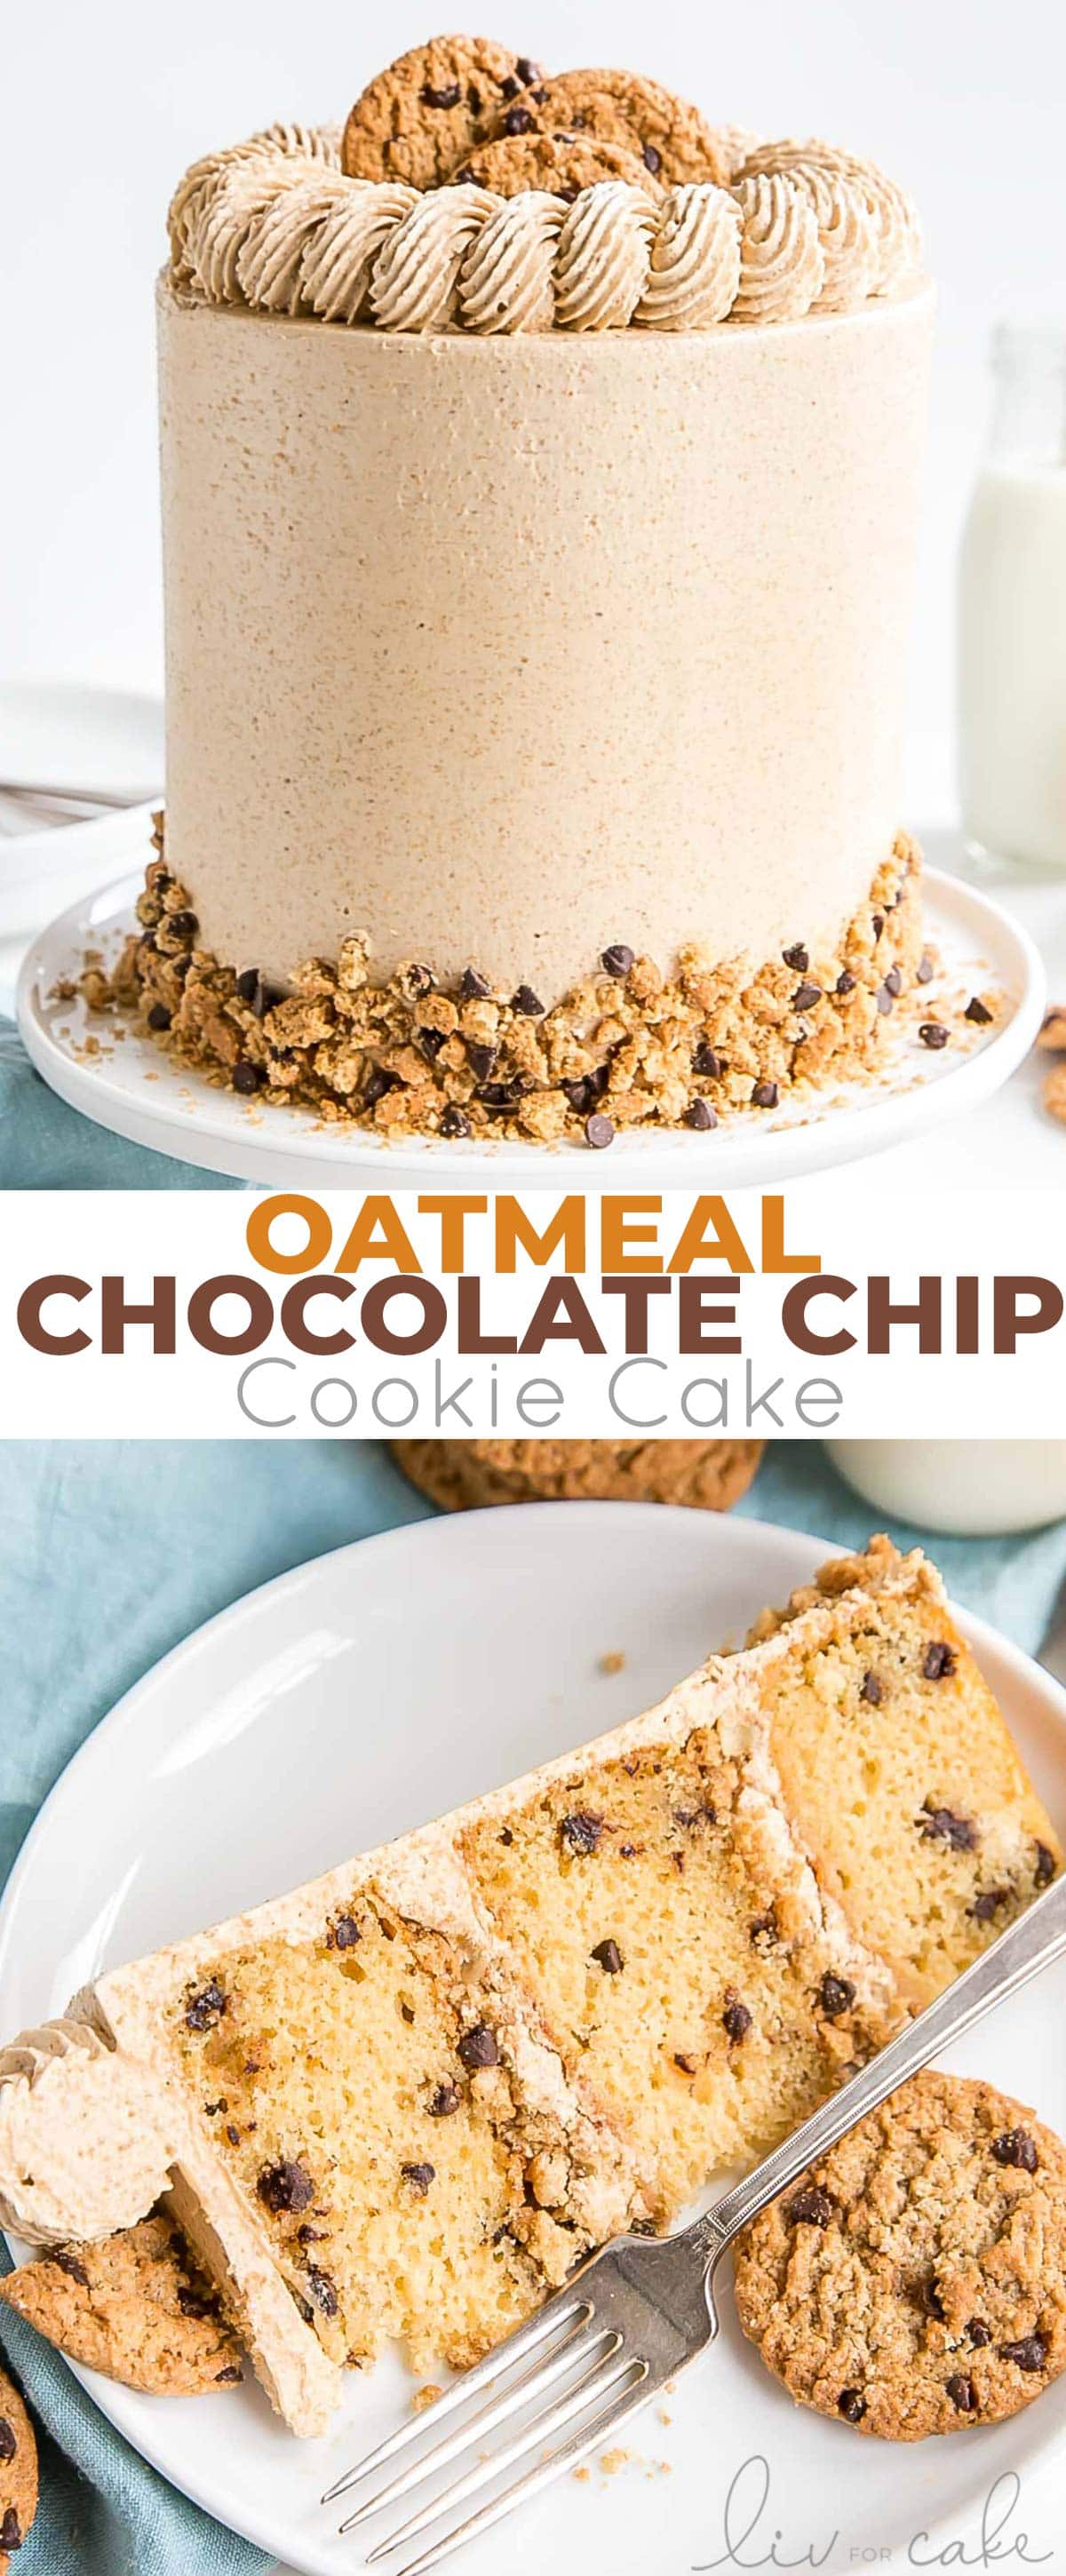 Oatmeal cookie cake photo collage.